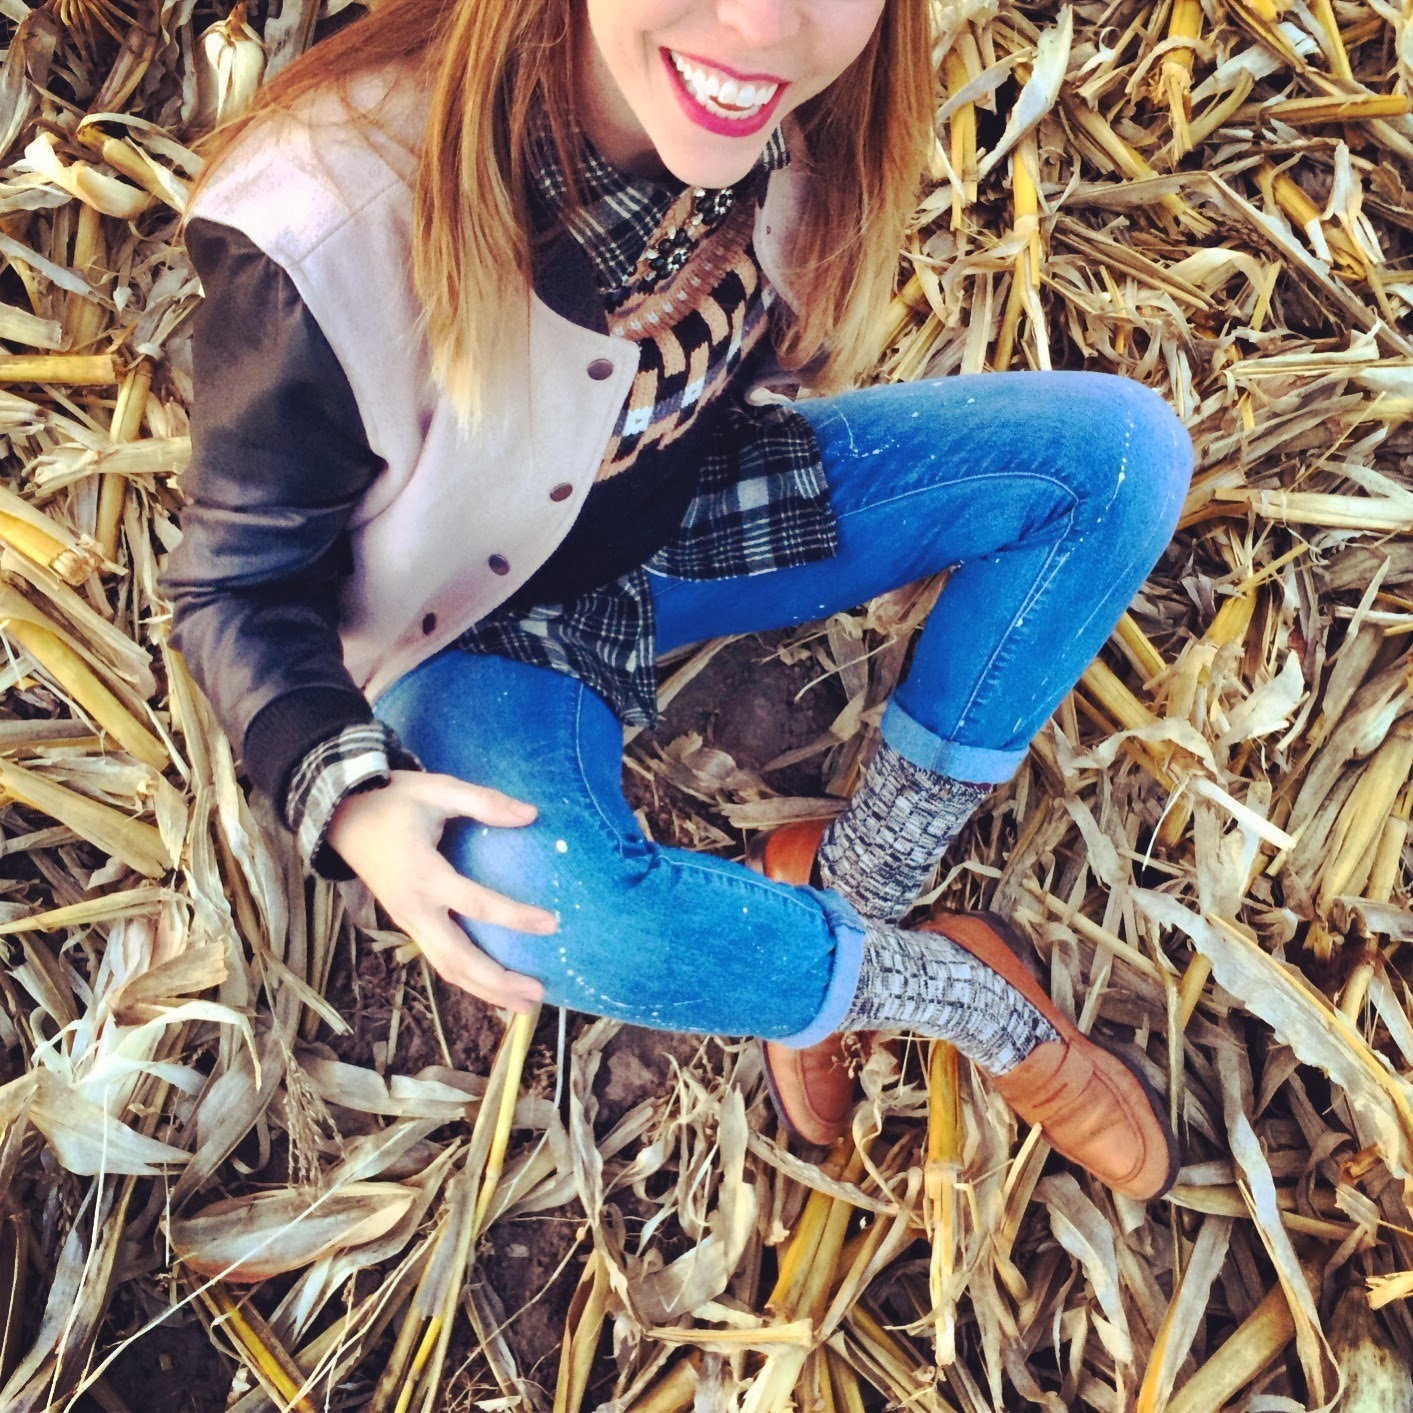 Nebraska, cornfield, Madewell, Topshop, Plaid, Denim, Fashion, Casual, Roots, Corn, winter